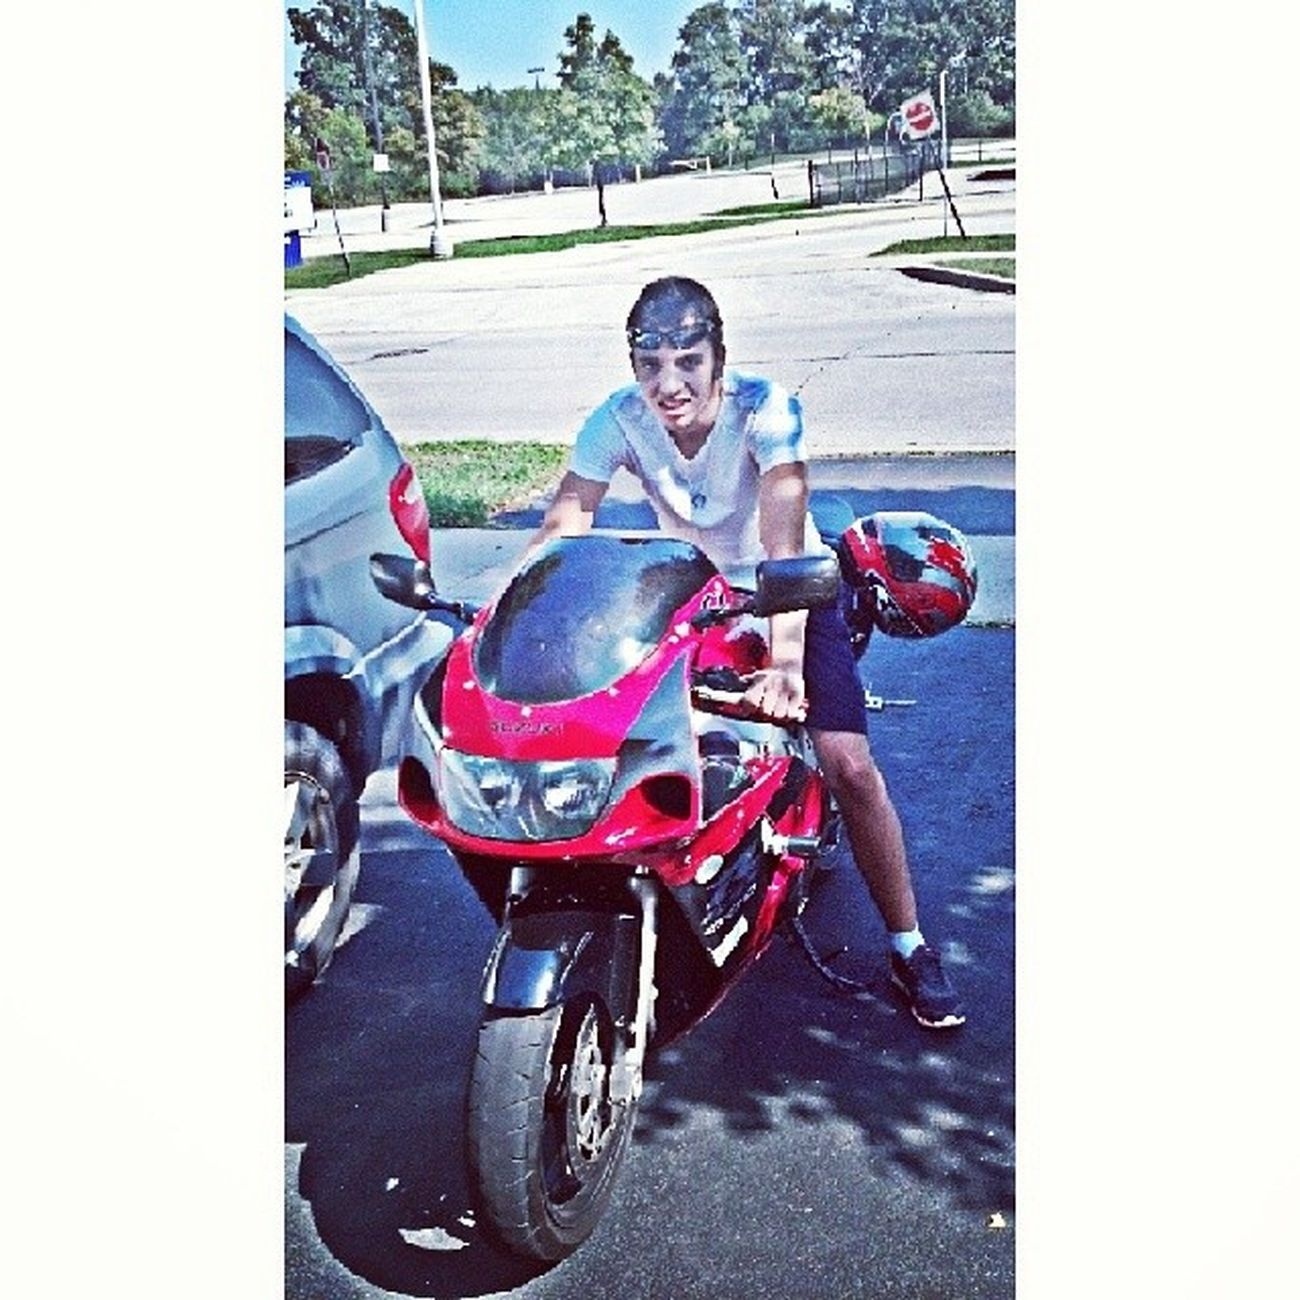 TBT  G's old gixxer, four wheels move the body, two wheels move the soul. Bikelife Bikesfordays RideOrDie gsxr gixxer 600cc 750cc 1000cc killa bikers tdot 416 905 mississauga oakville torontoshottest toronto 647 speed motorbike motorbikes vintage